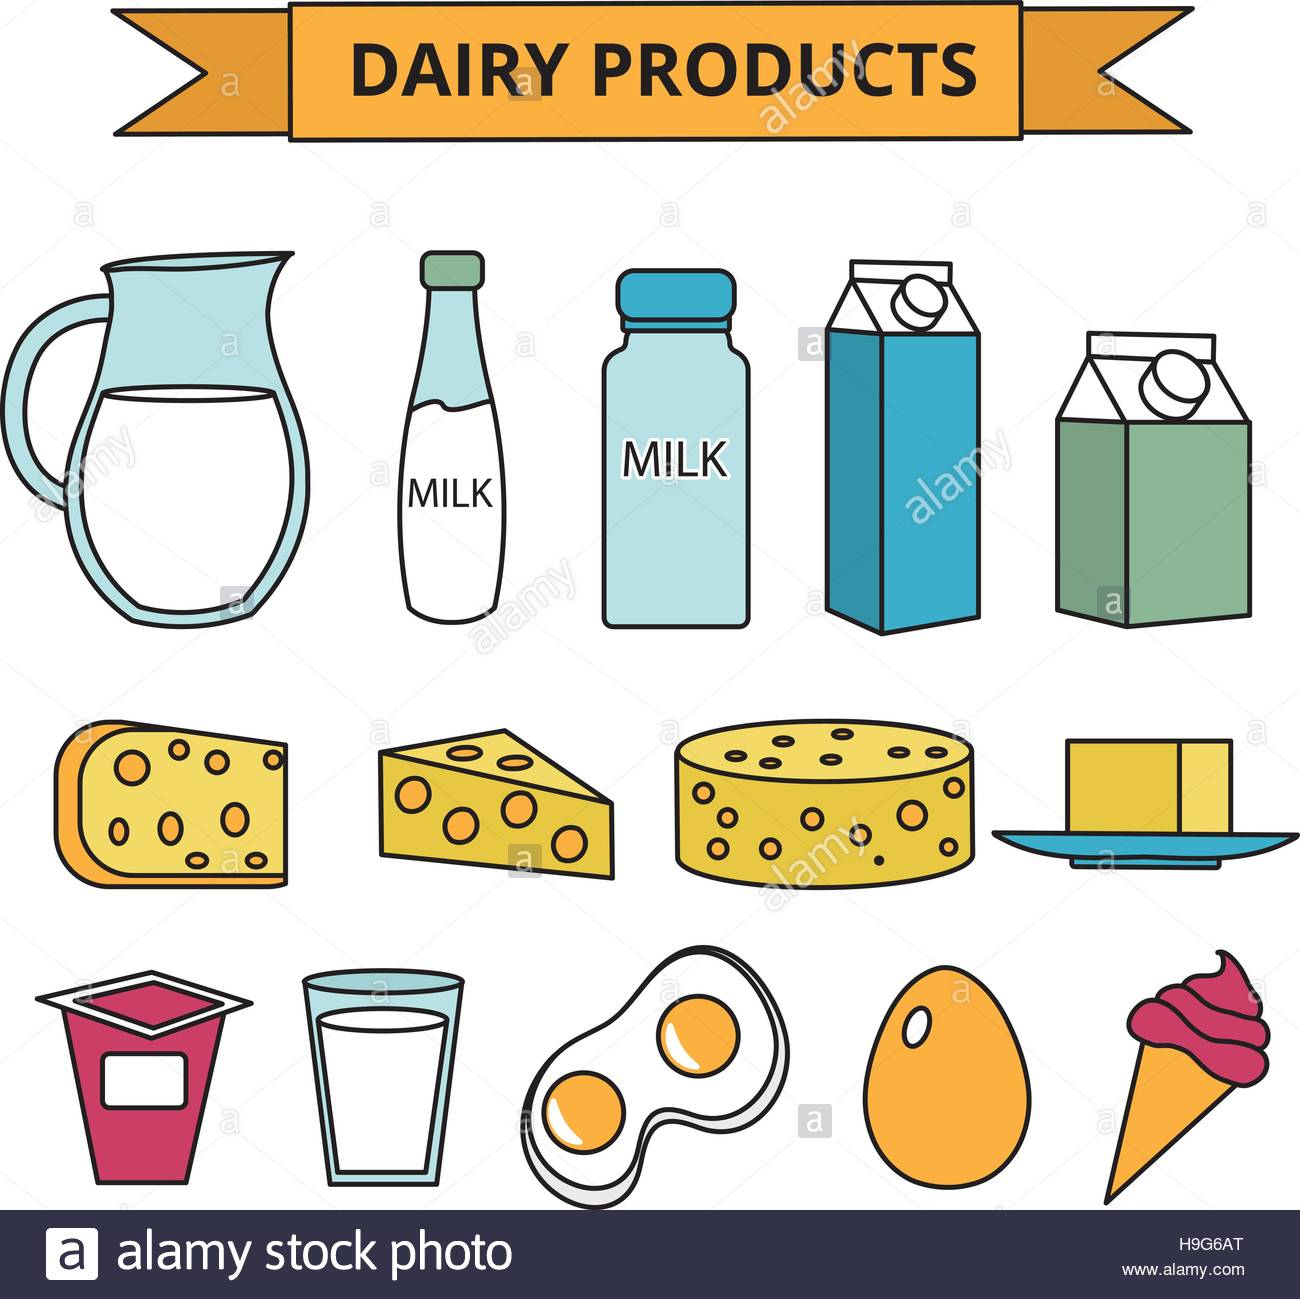 Dairy Products Clipart 10 Clipart Station